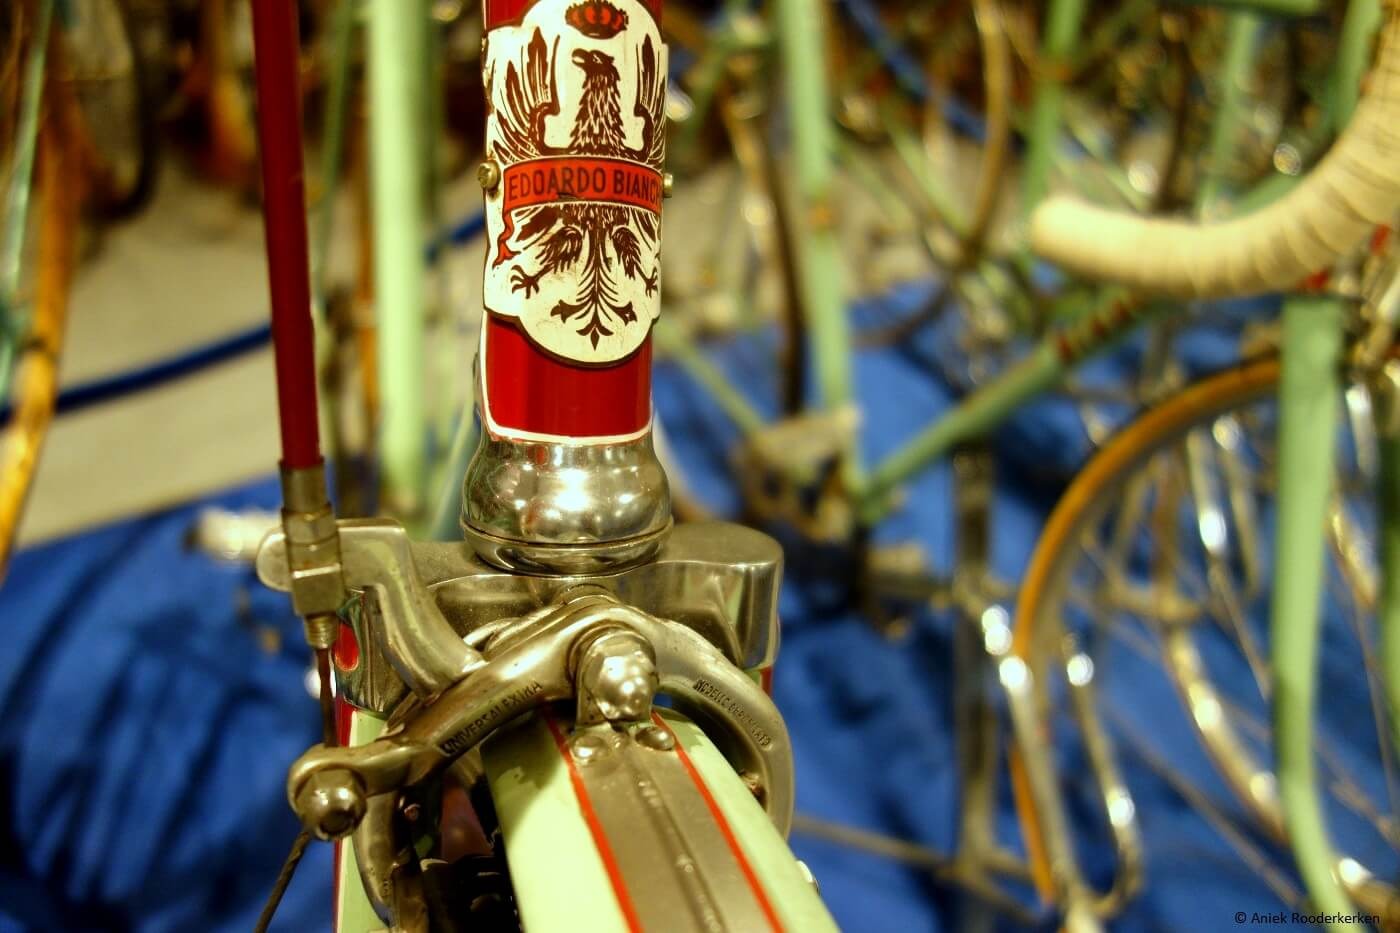 Bianchi Racefiets in Museo Nicolis